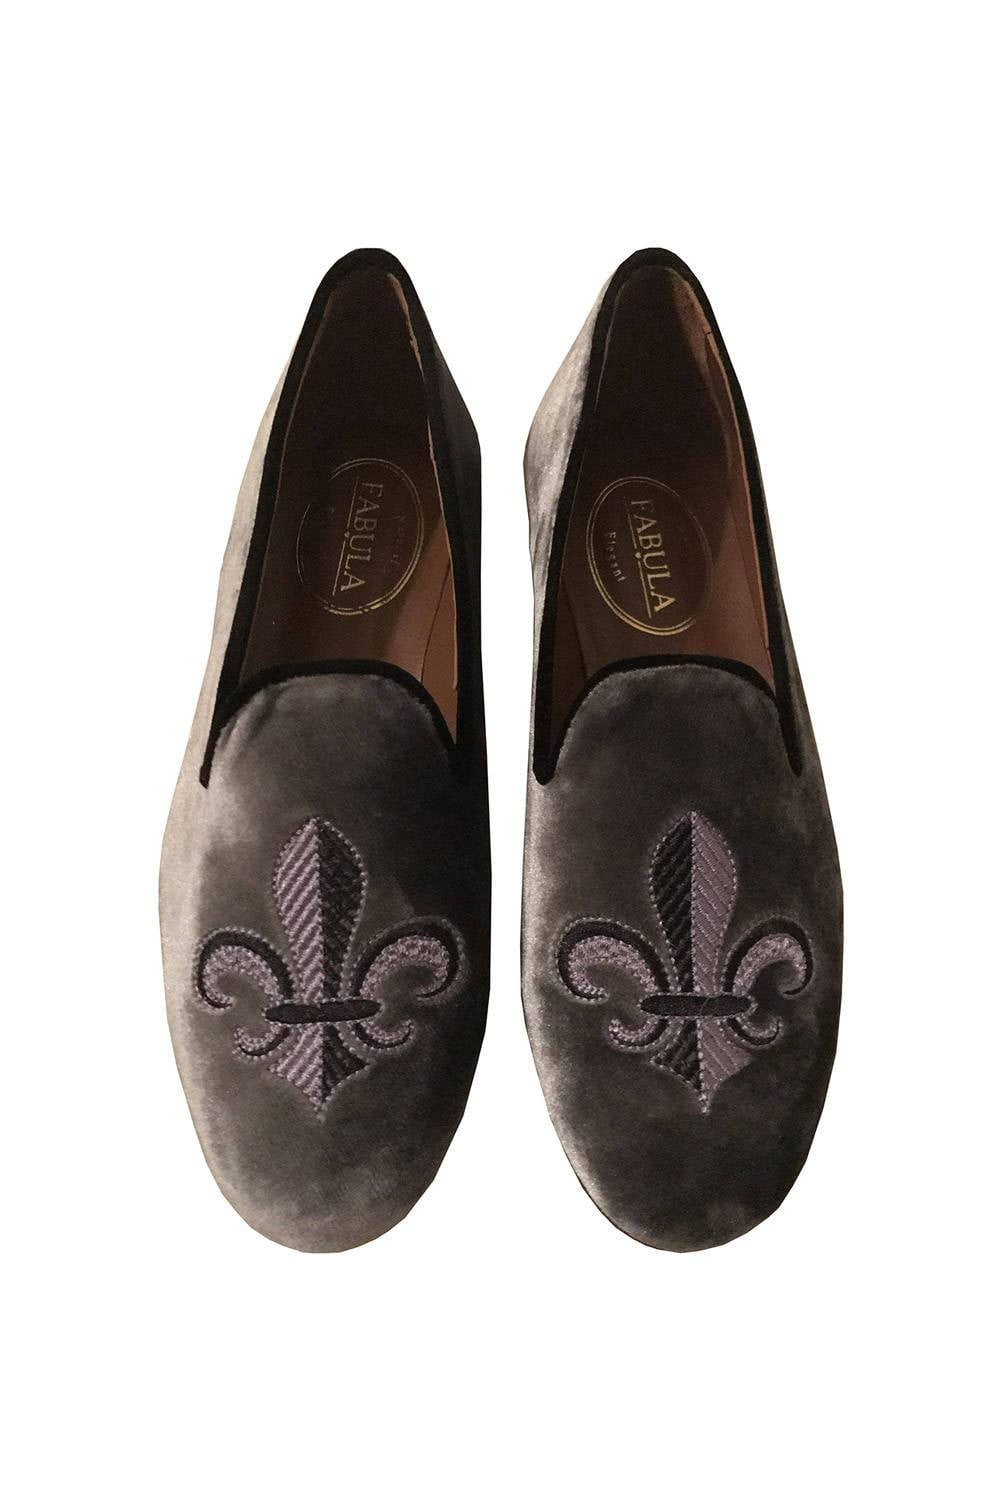 gray velvet slippers with a fleur de lis emrbroidery